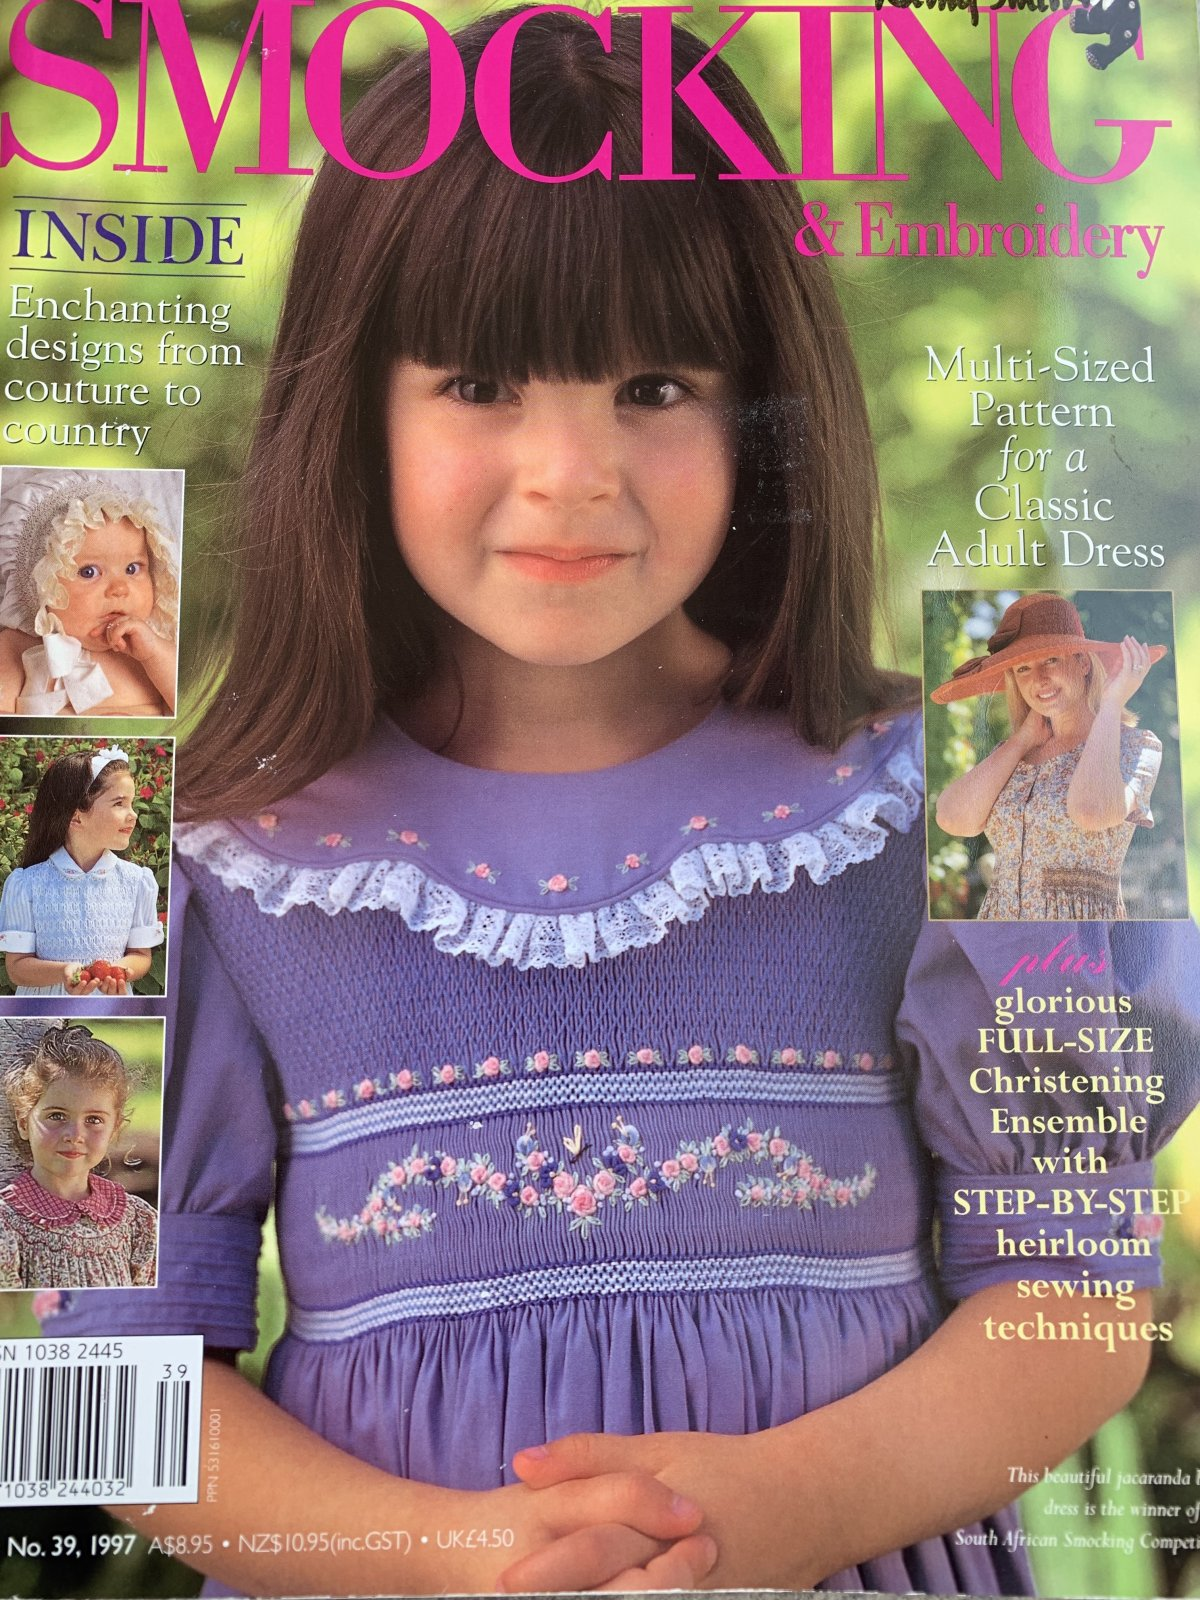 Australian Smocking & Embroidery Issue 39 (Previously Loved)